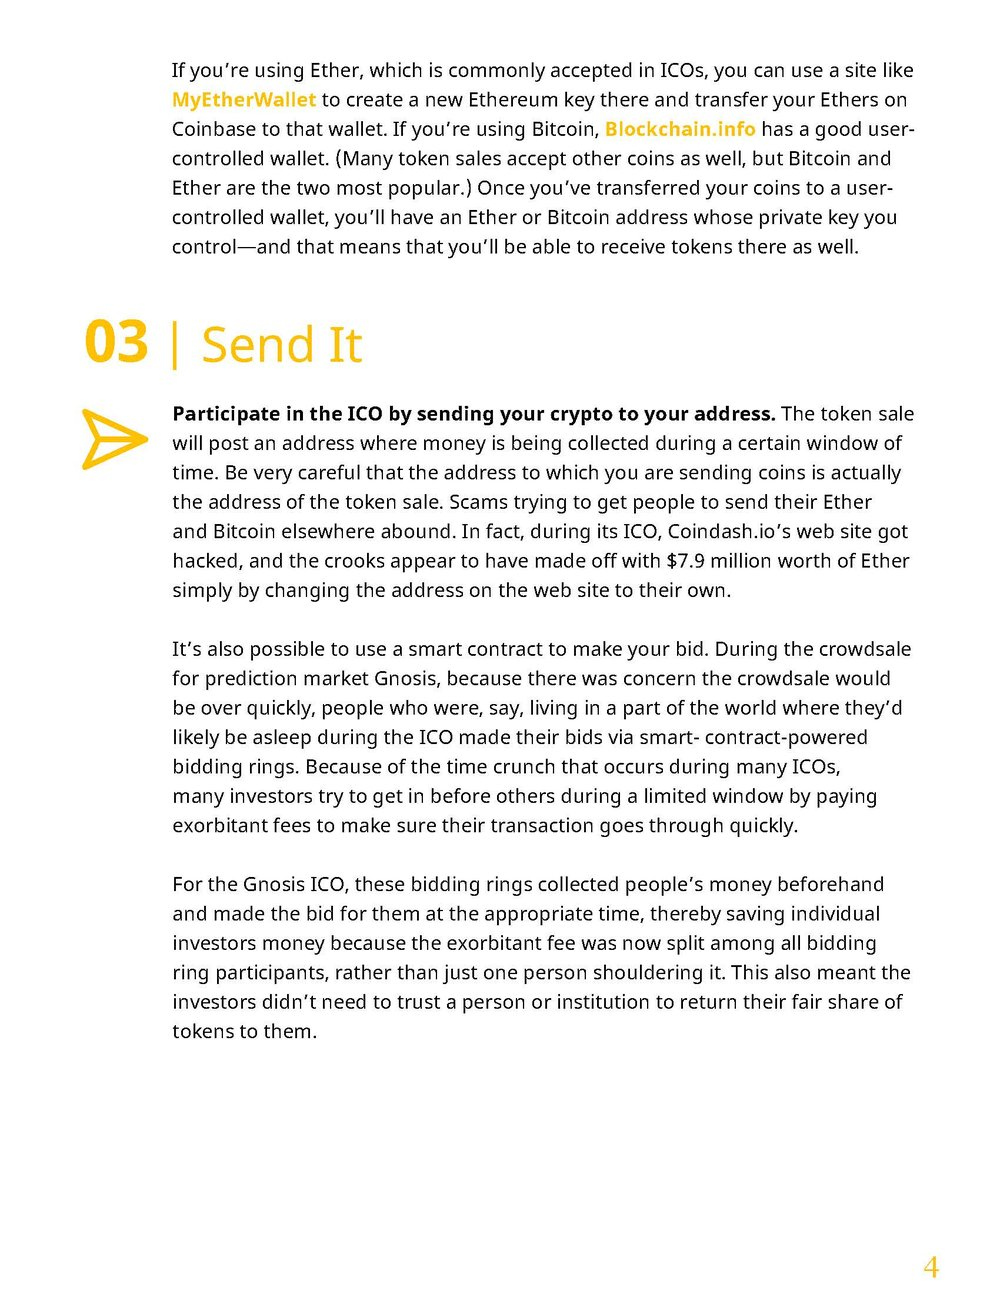 forbes-crypto-newsletter-r04_Page_04.jpg